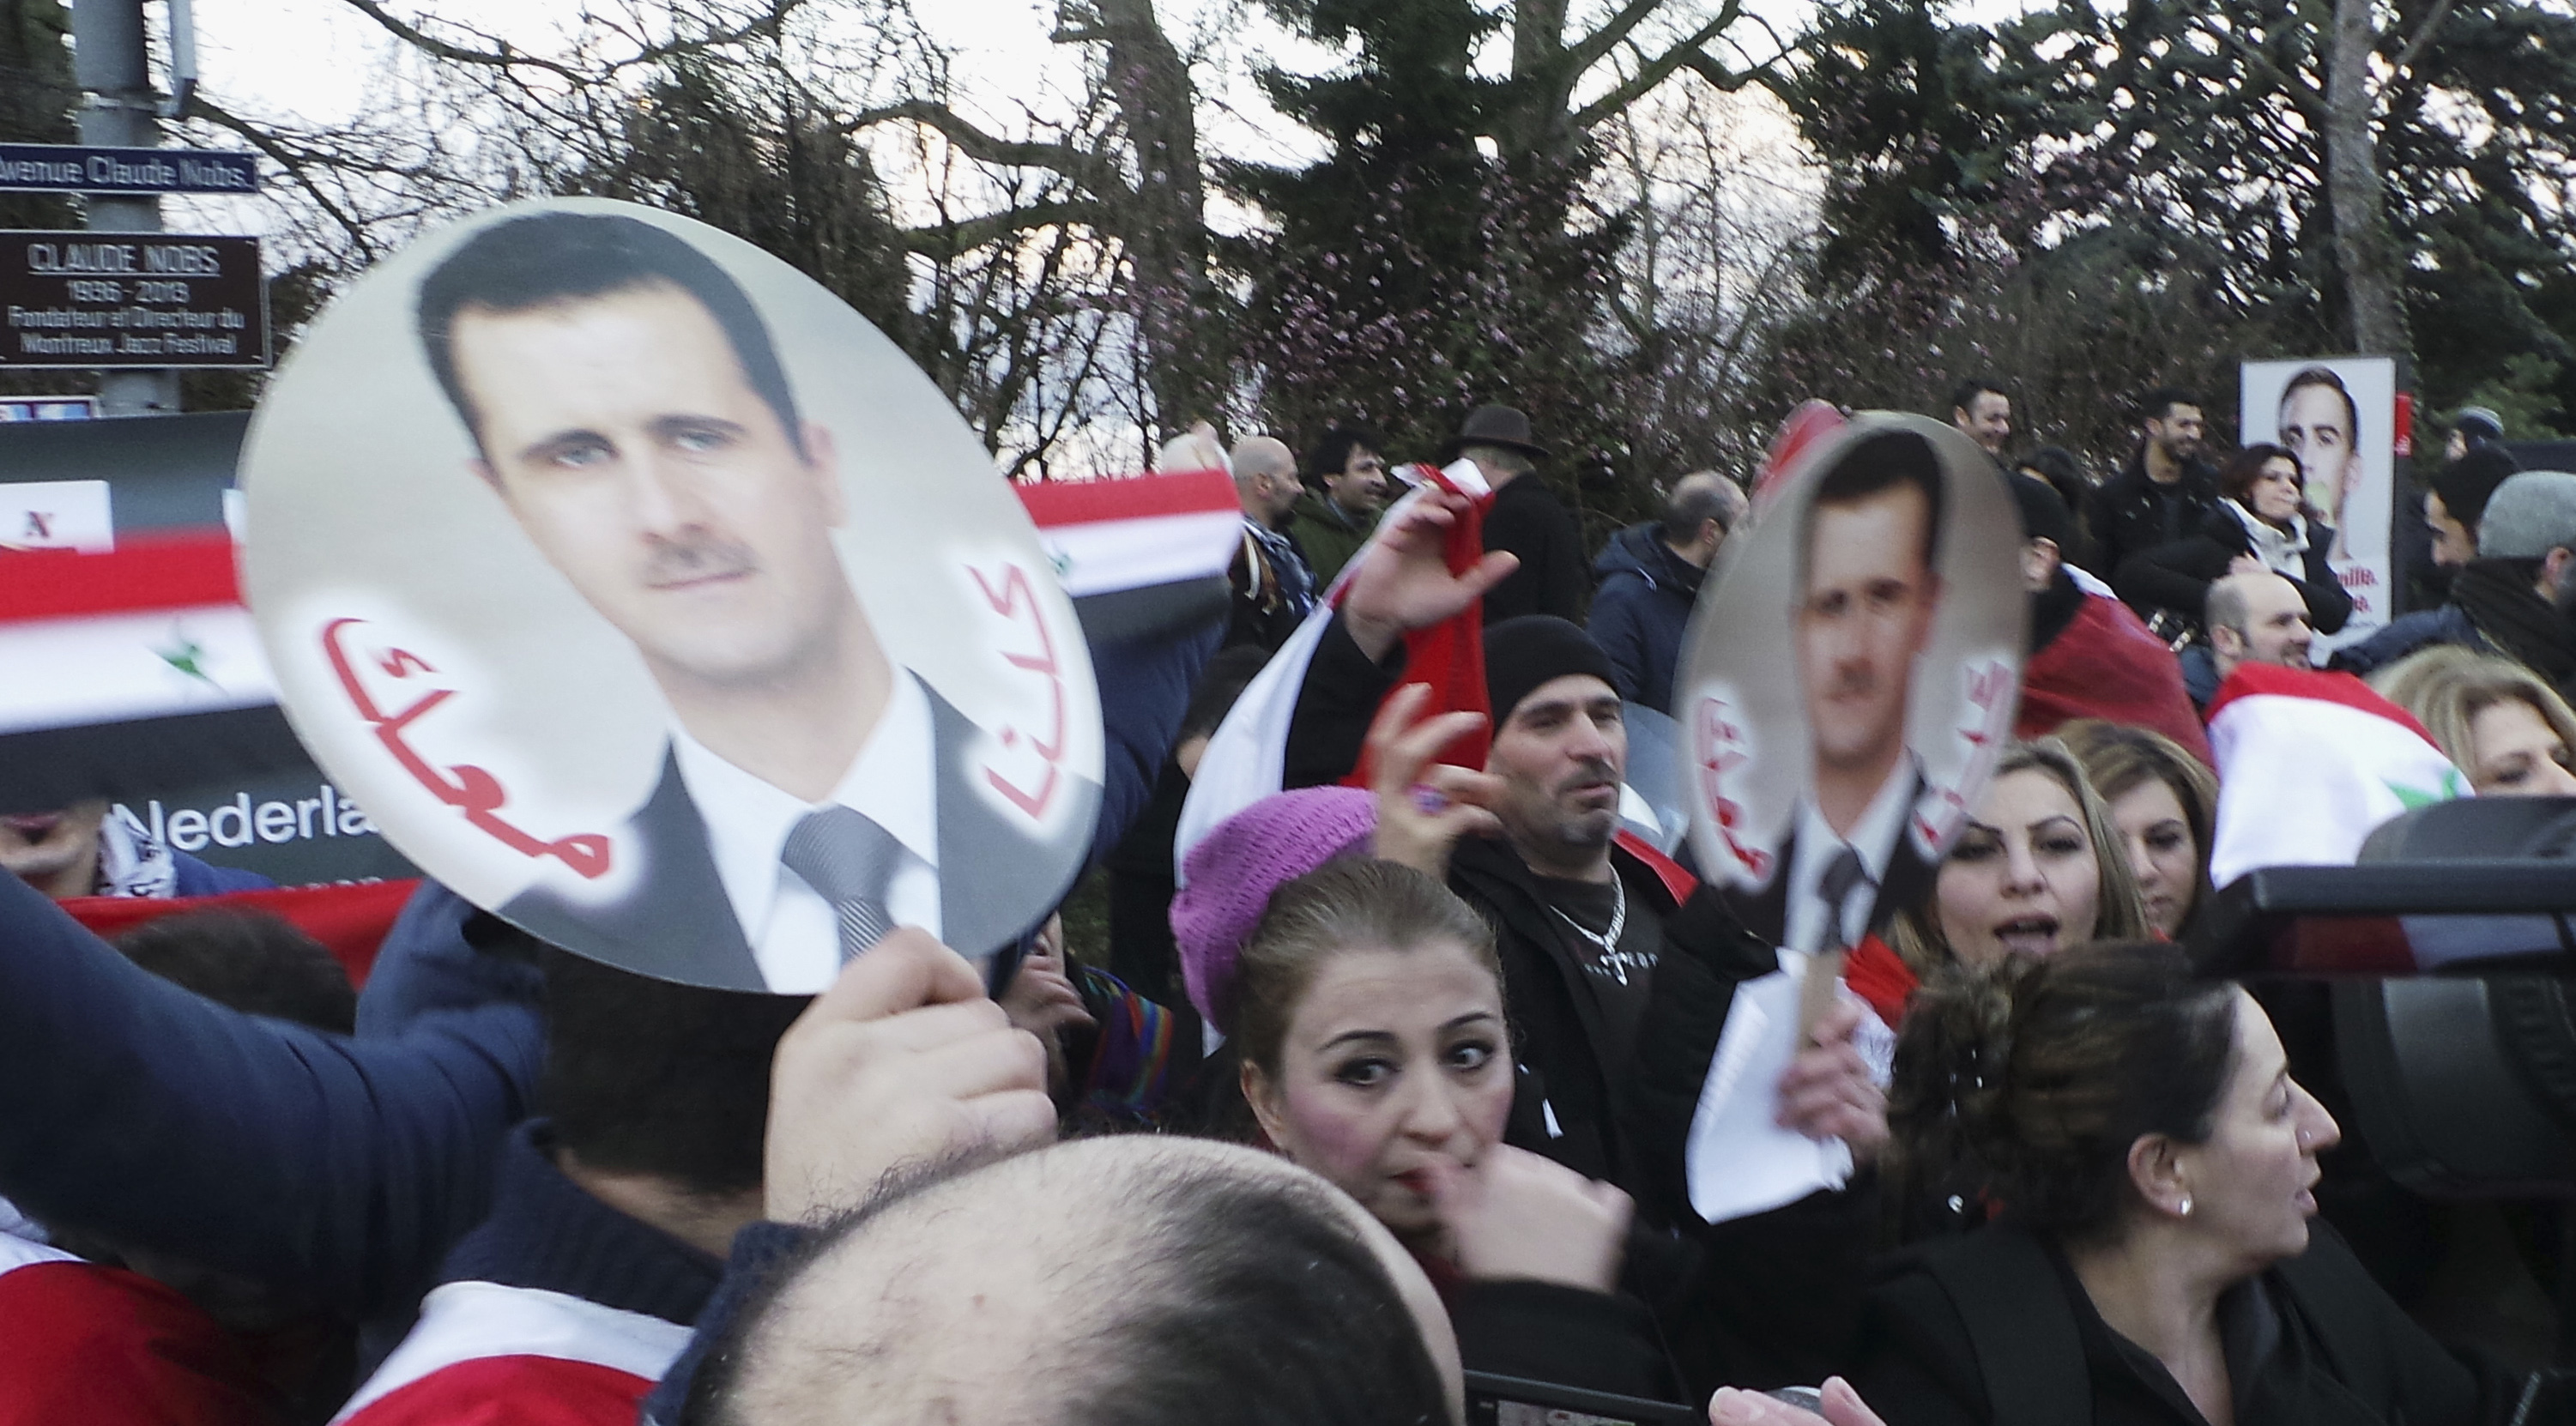 pro-Assad demonstrators